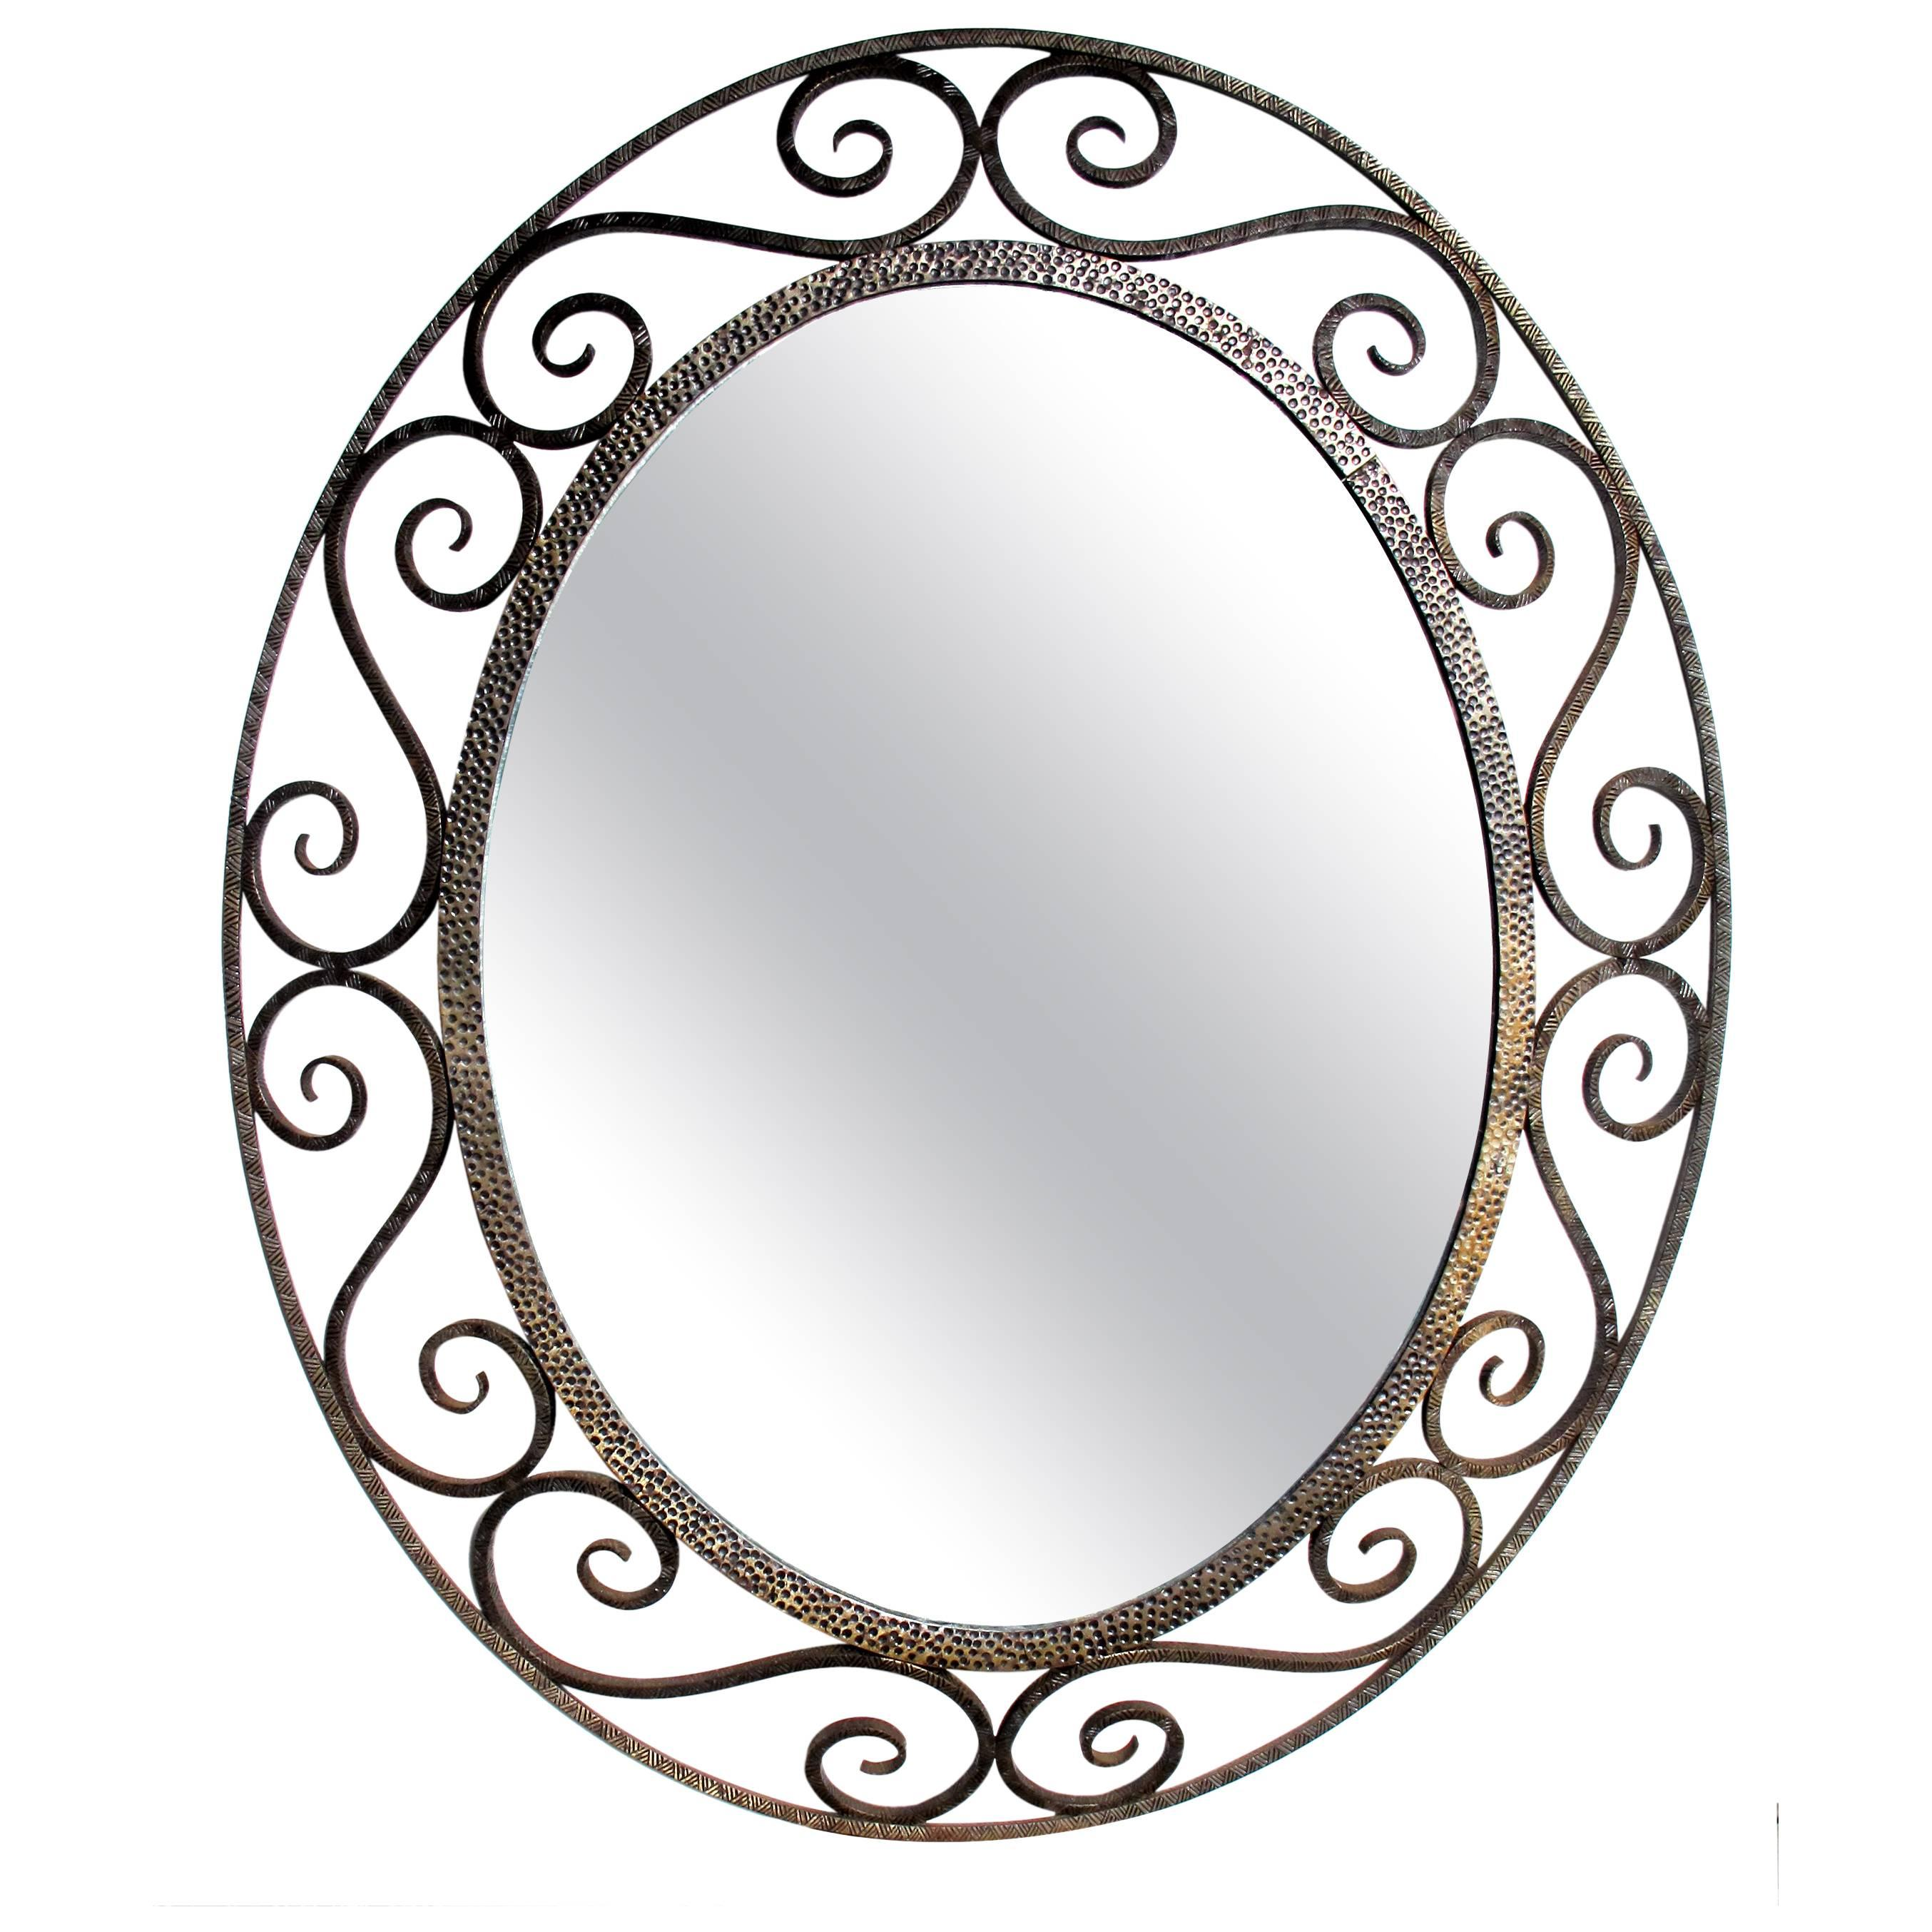 2708x2708 A French Art Deco Openwork Iron Oval Mirror In The Style Of Edgar